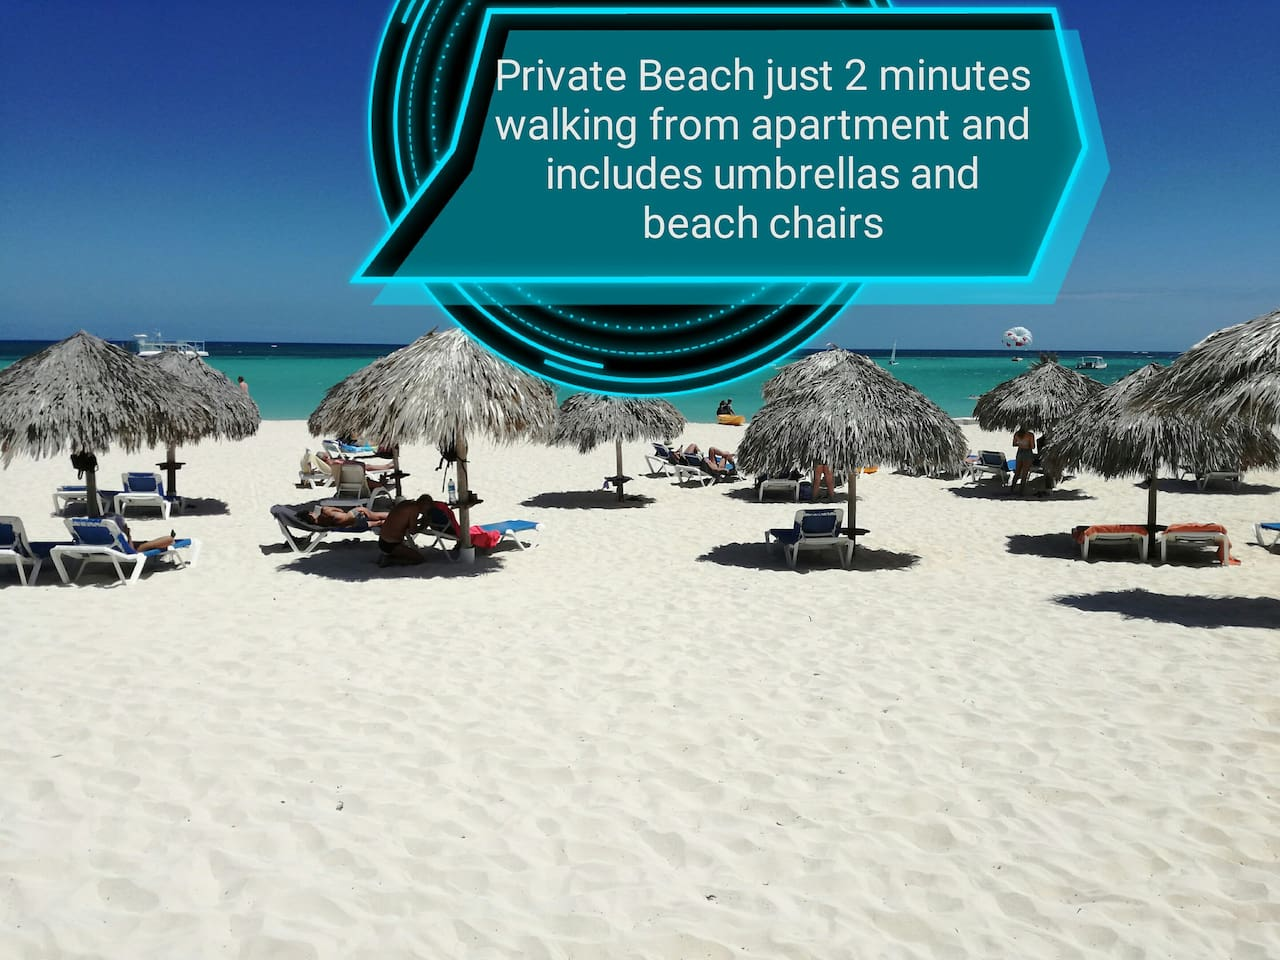 Amazing private beach includes umbrellas and beach chairs